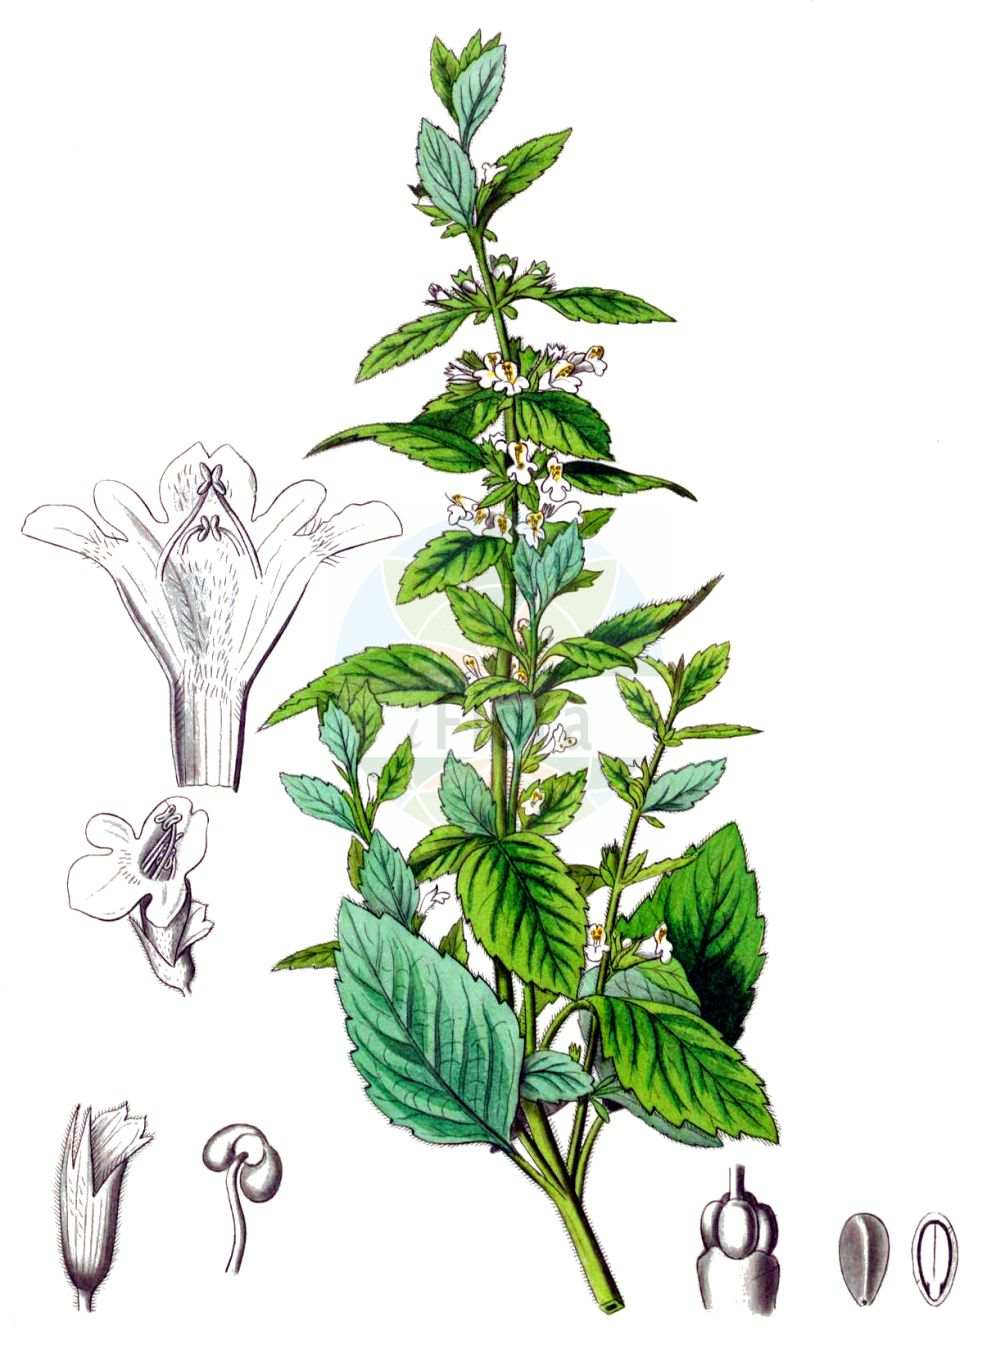 Historische Abbildung von Melissa officinalis (Zitronen-Melisse - Balm). Das Bild zeigt Blatt, Bluete, Frucht und Same. ---- Historical Drawing of Melissa officinalis (Zitronen-Melisse - Balm).The image is showing leaf, flower, fruit and seed.(Melissa officinalis,Zitronen-Melisse,Balm,Faucibarba officinalis,Melissa officinalis,Mutelia officinalis,Thymus melissa,Zitronen-Melisse,Balm,Common Balm,Bee Balm,Lemon Balm,Melissa,Melisse,Balm,Lamiaceae,Lippenbluetengewaechse,Lippenbluetler,Nettle family,Blatt,Bluete,Frucht,Same,leaf,flower,fruit,seed,Kohl (1891-1895))